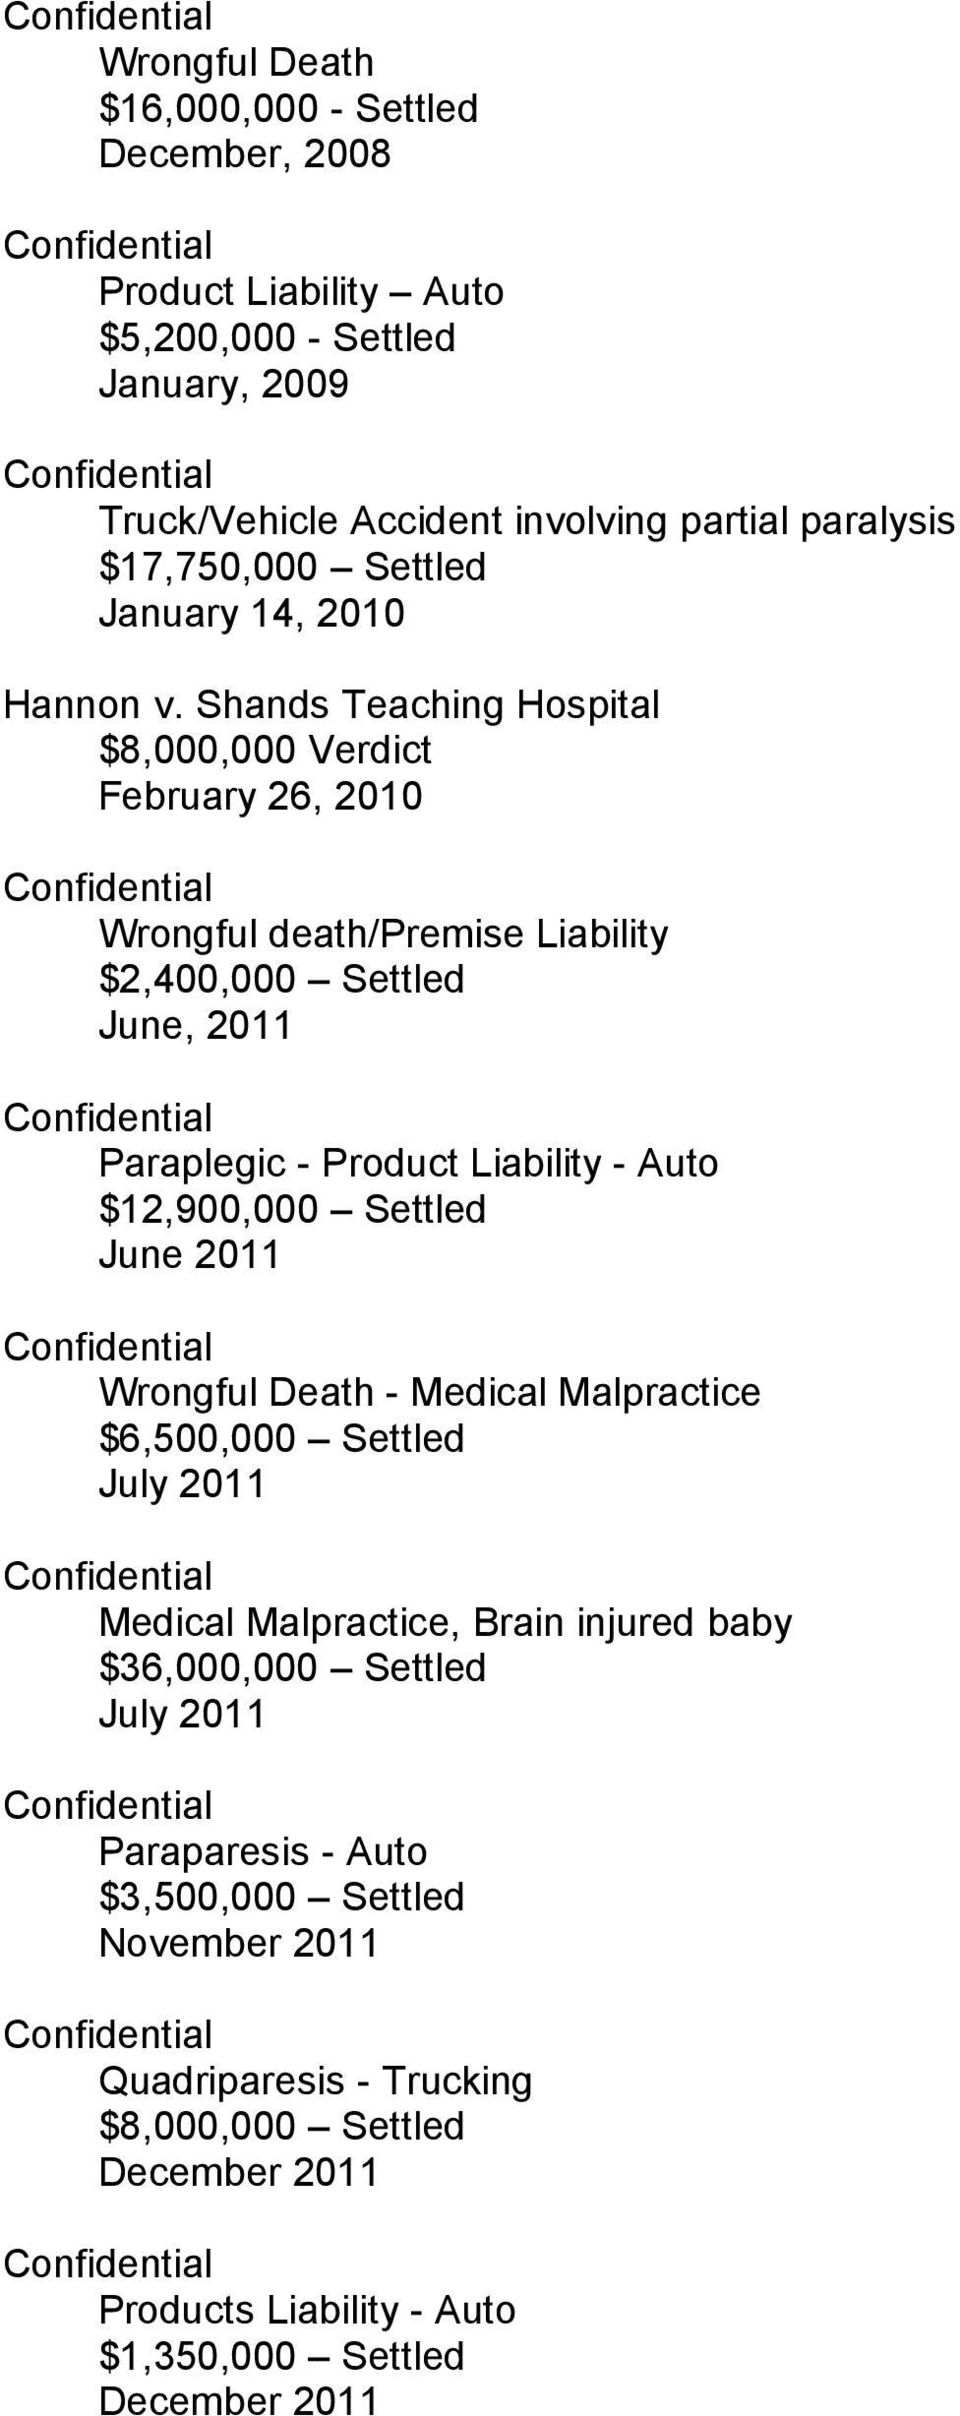 Shands Teaching Hospital $8,000,000 Verdict February 26, 2010 Wrongful death/premise Liability $2,400,000 Settled June, 2011 Paraplegic - Product Liability - Auto $12,900,000